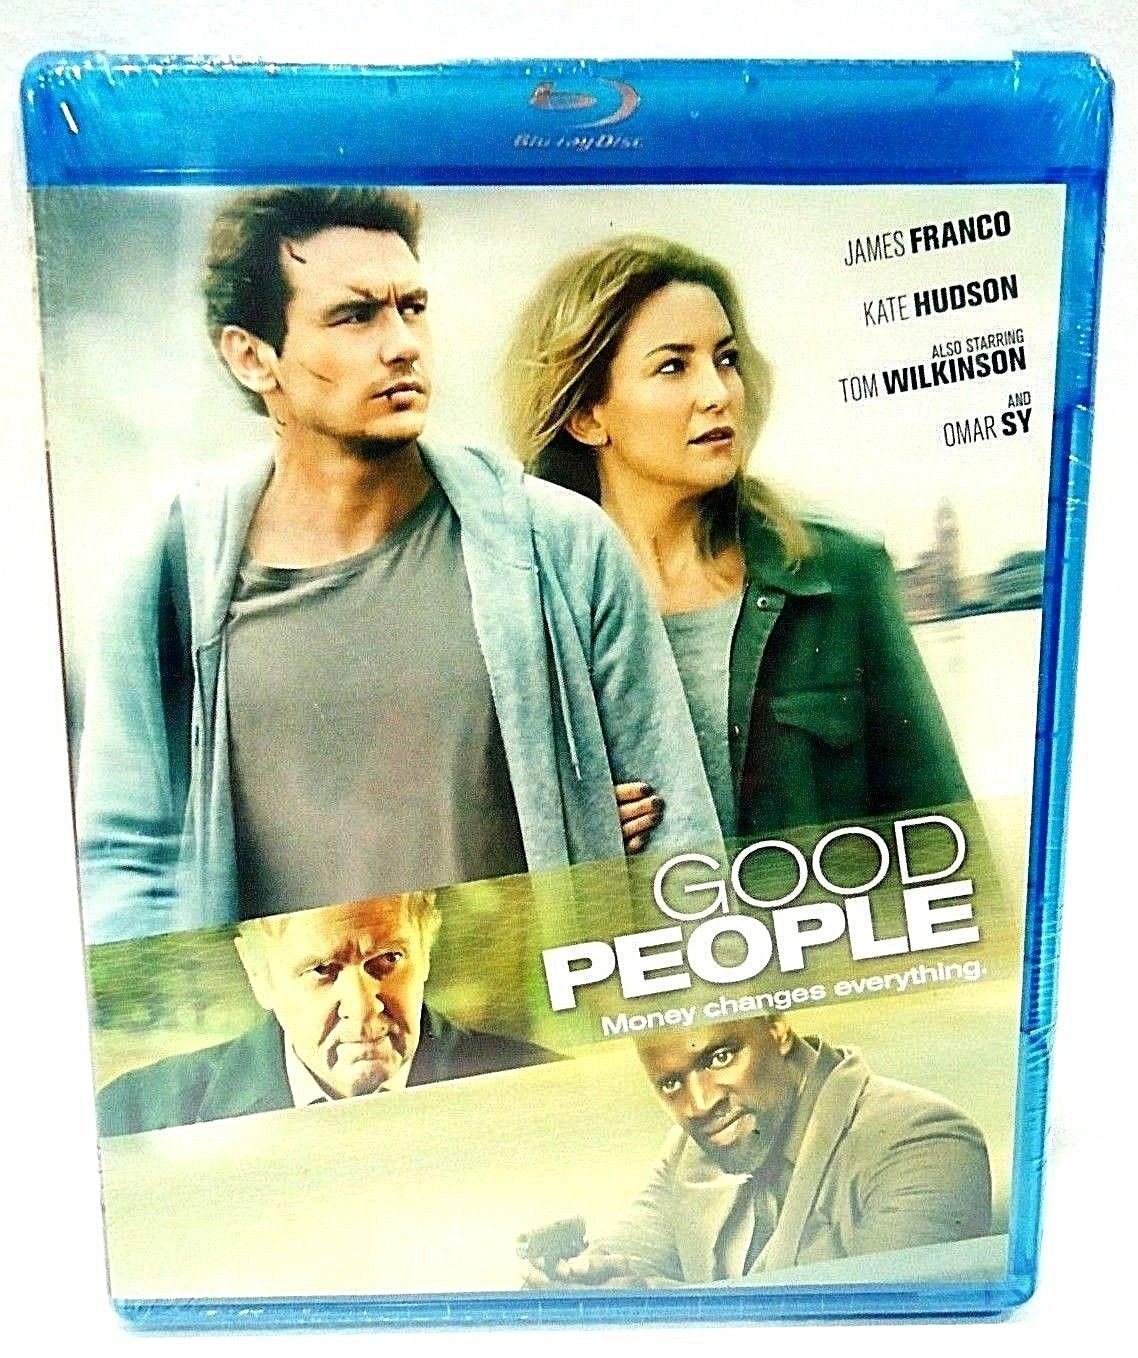 GOOD PEOPLE - BLU-RAY - DVD - JAMES FRANCO - KATE HUDSON - NEW - ACTION - MOVIE